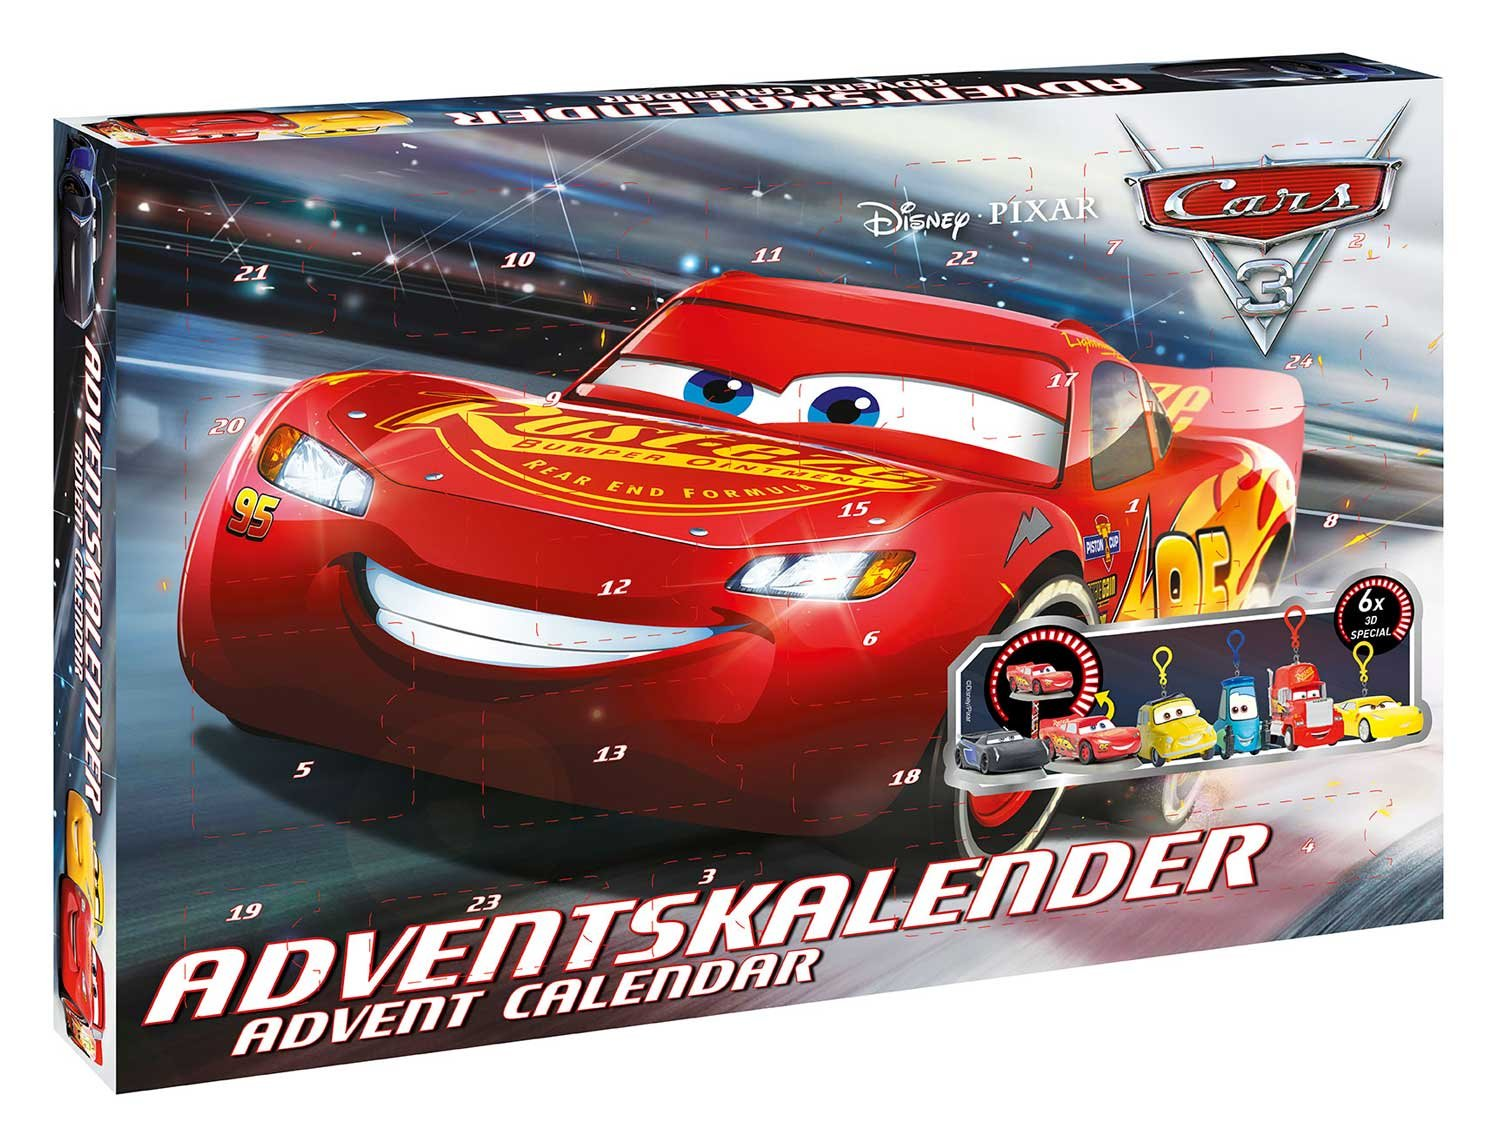 Craze 57361 - Adventskalender Disney Pixar Cars 3 Craze_57361